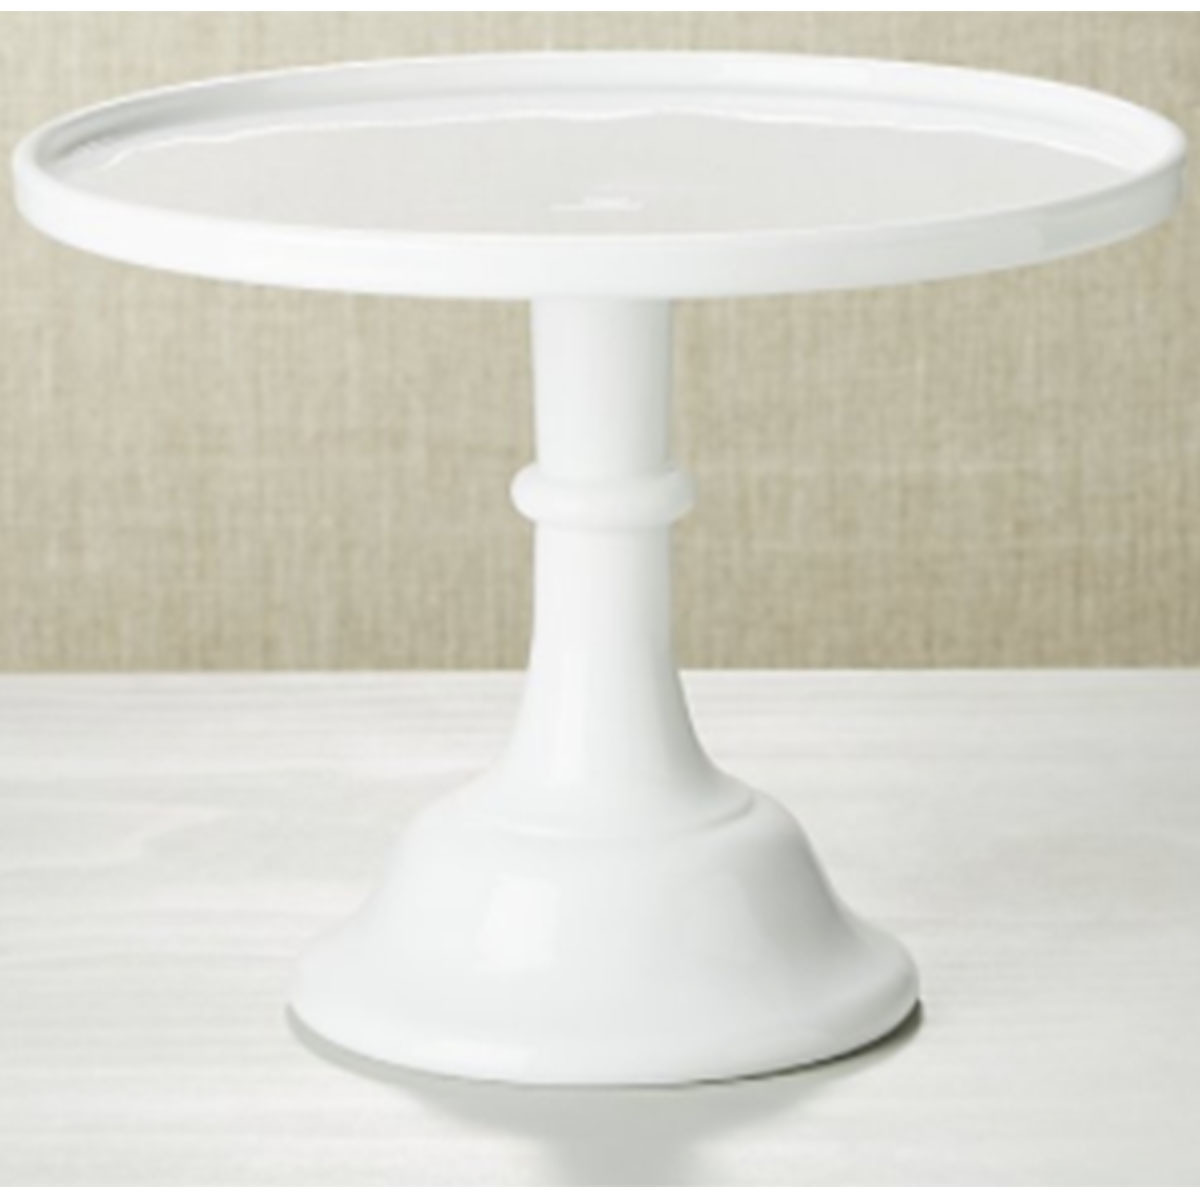 Tall white cake stand with a vintage-inspired look photo